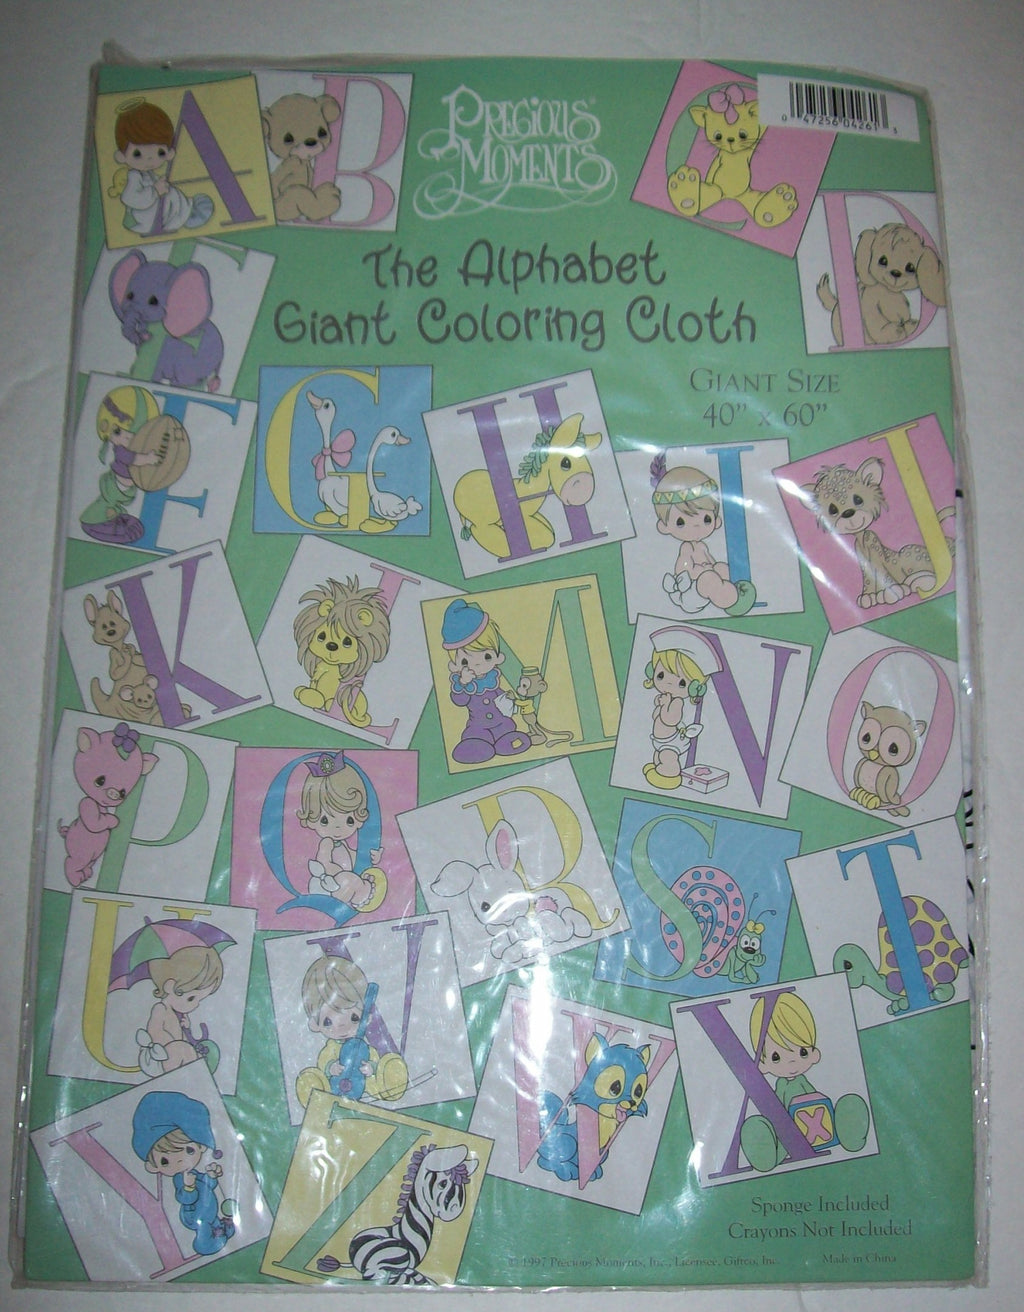 Precious Moments The Alphabet Giant Coloring Cloth-We Got Character